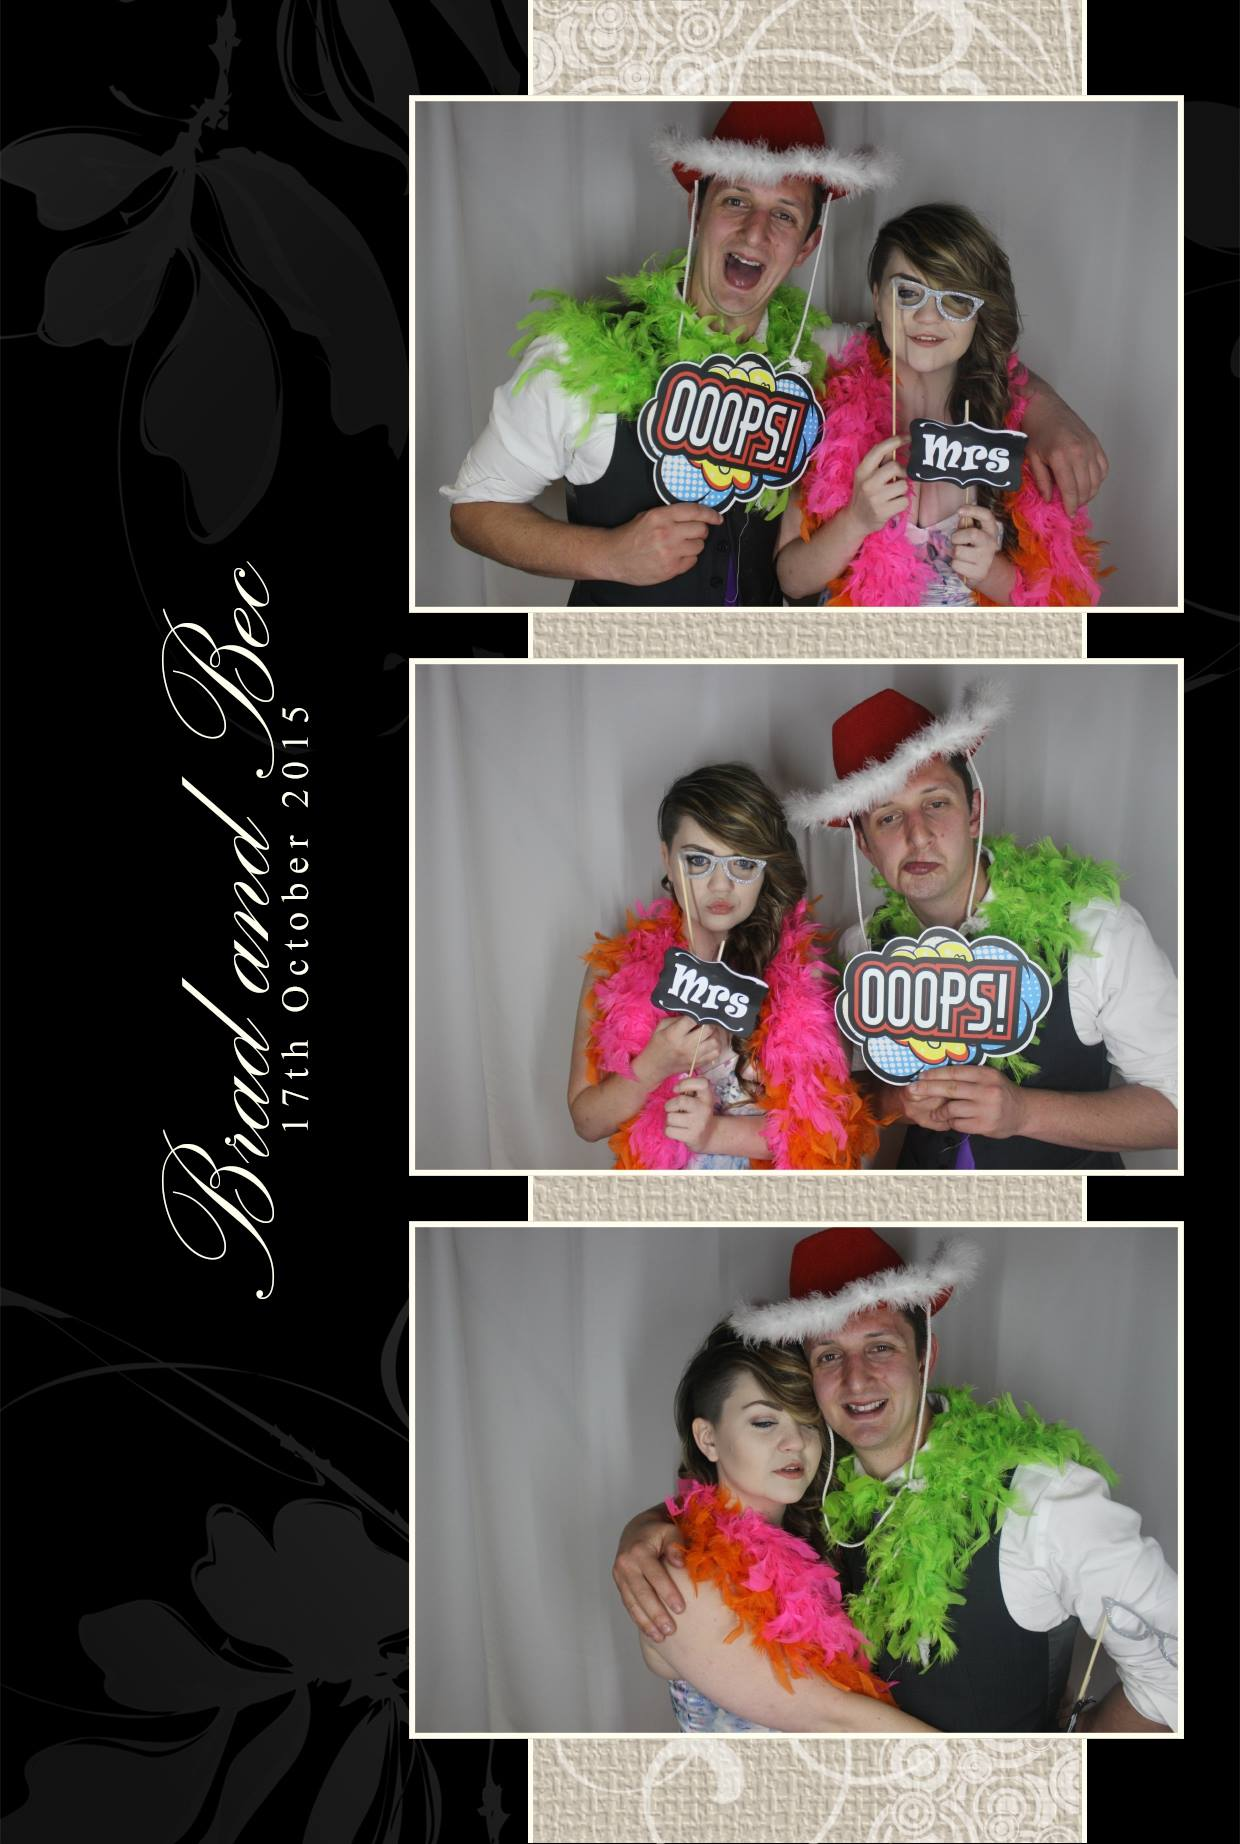 Adelaide Photo booth